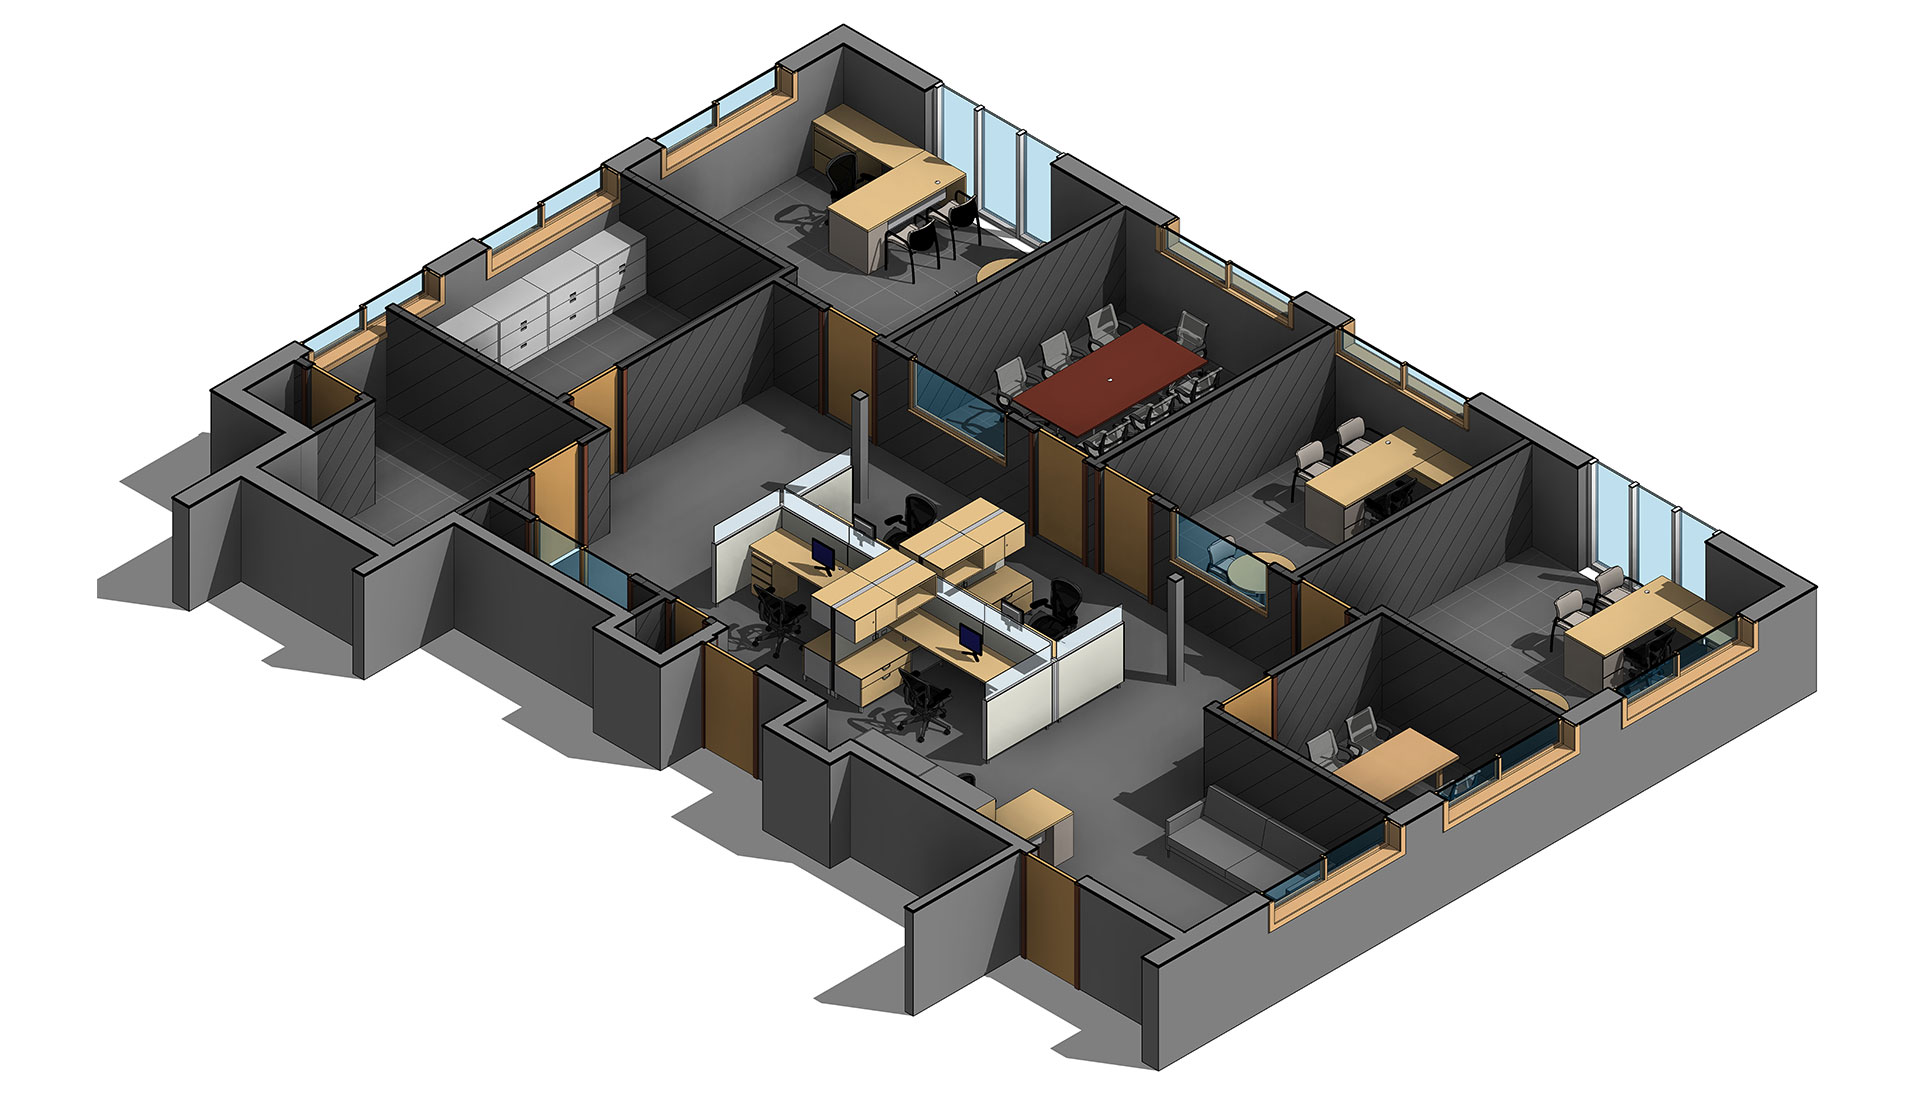 Section-View_3D-Revit-Architectural-Model-with-Custom-Revit-Families_Office-Space_BIM-Modeling-by-United-BIM